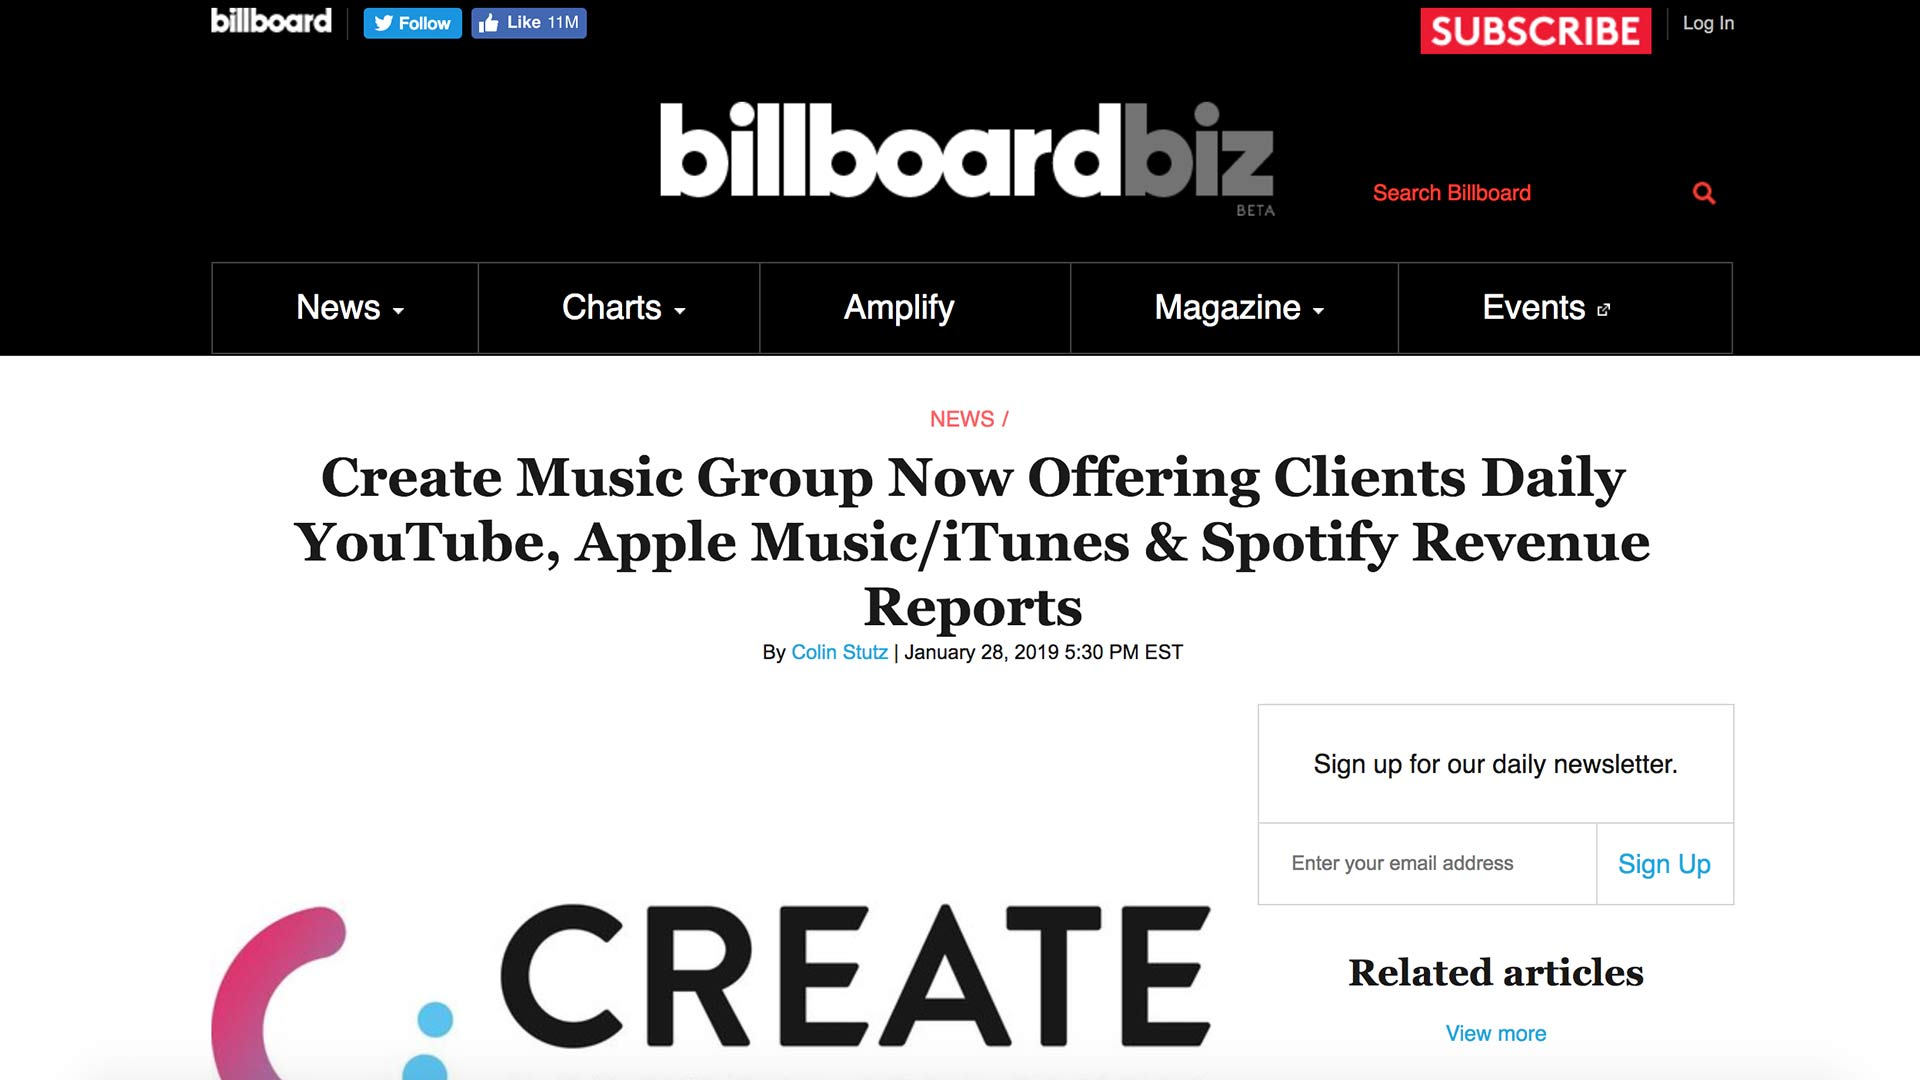 Fairness Rocks News Create Music Group Now Offering Clients Daily YouTube, Apple Music/iTunes & Spotify Revenue Reports